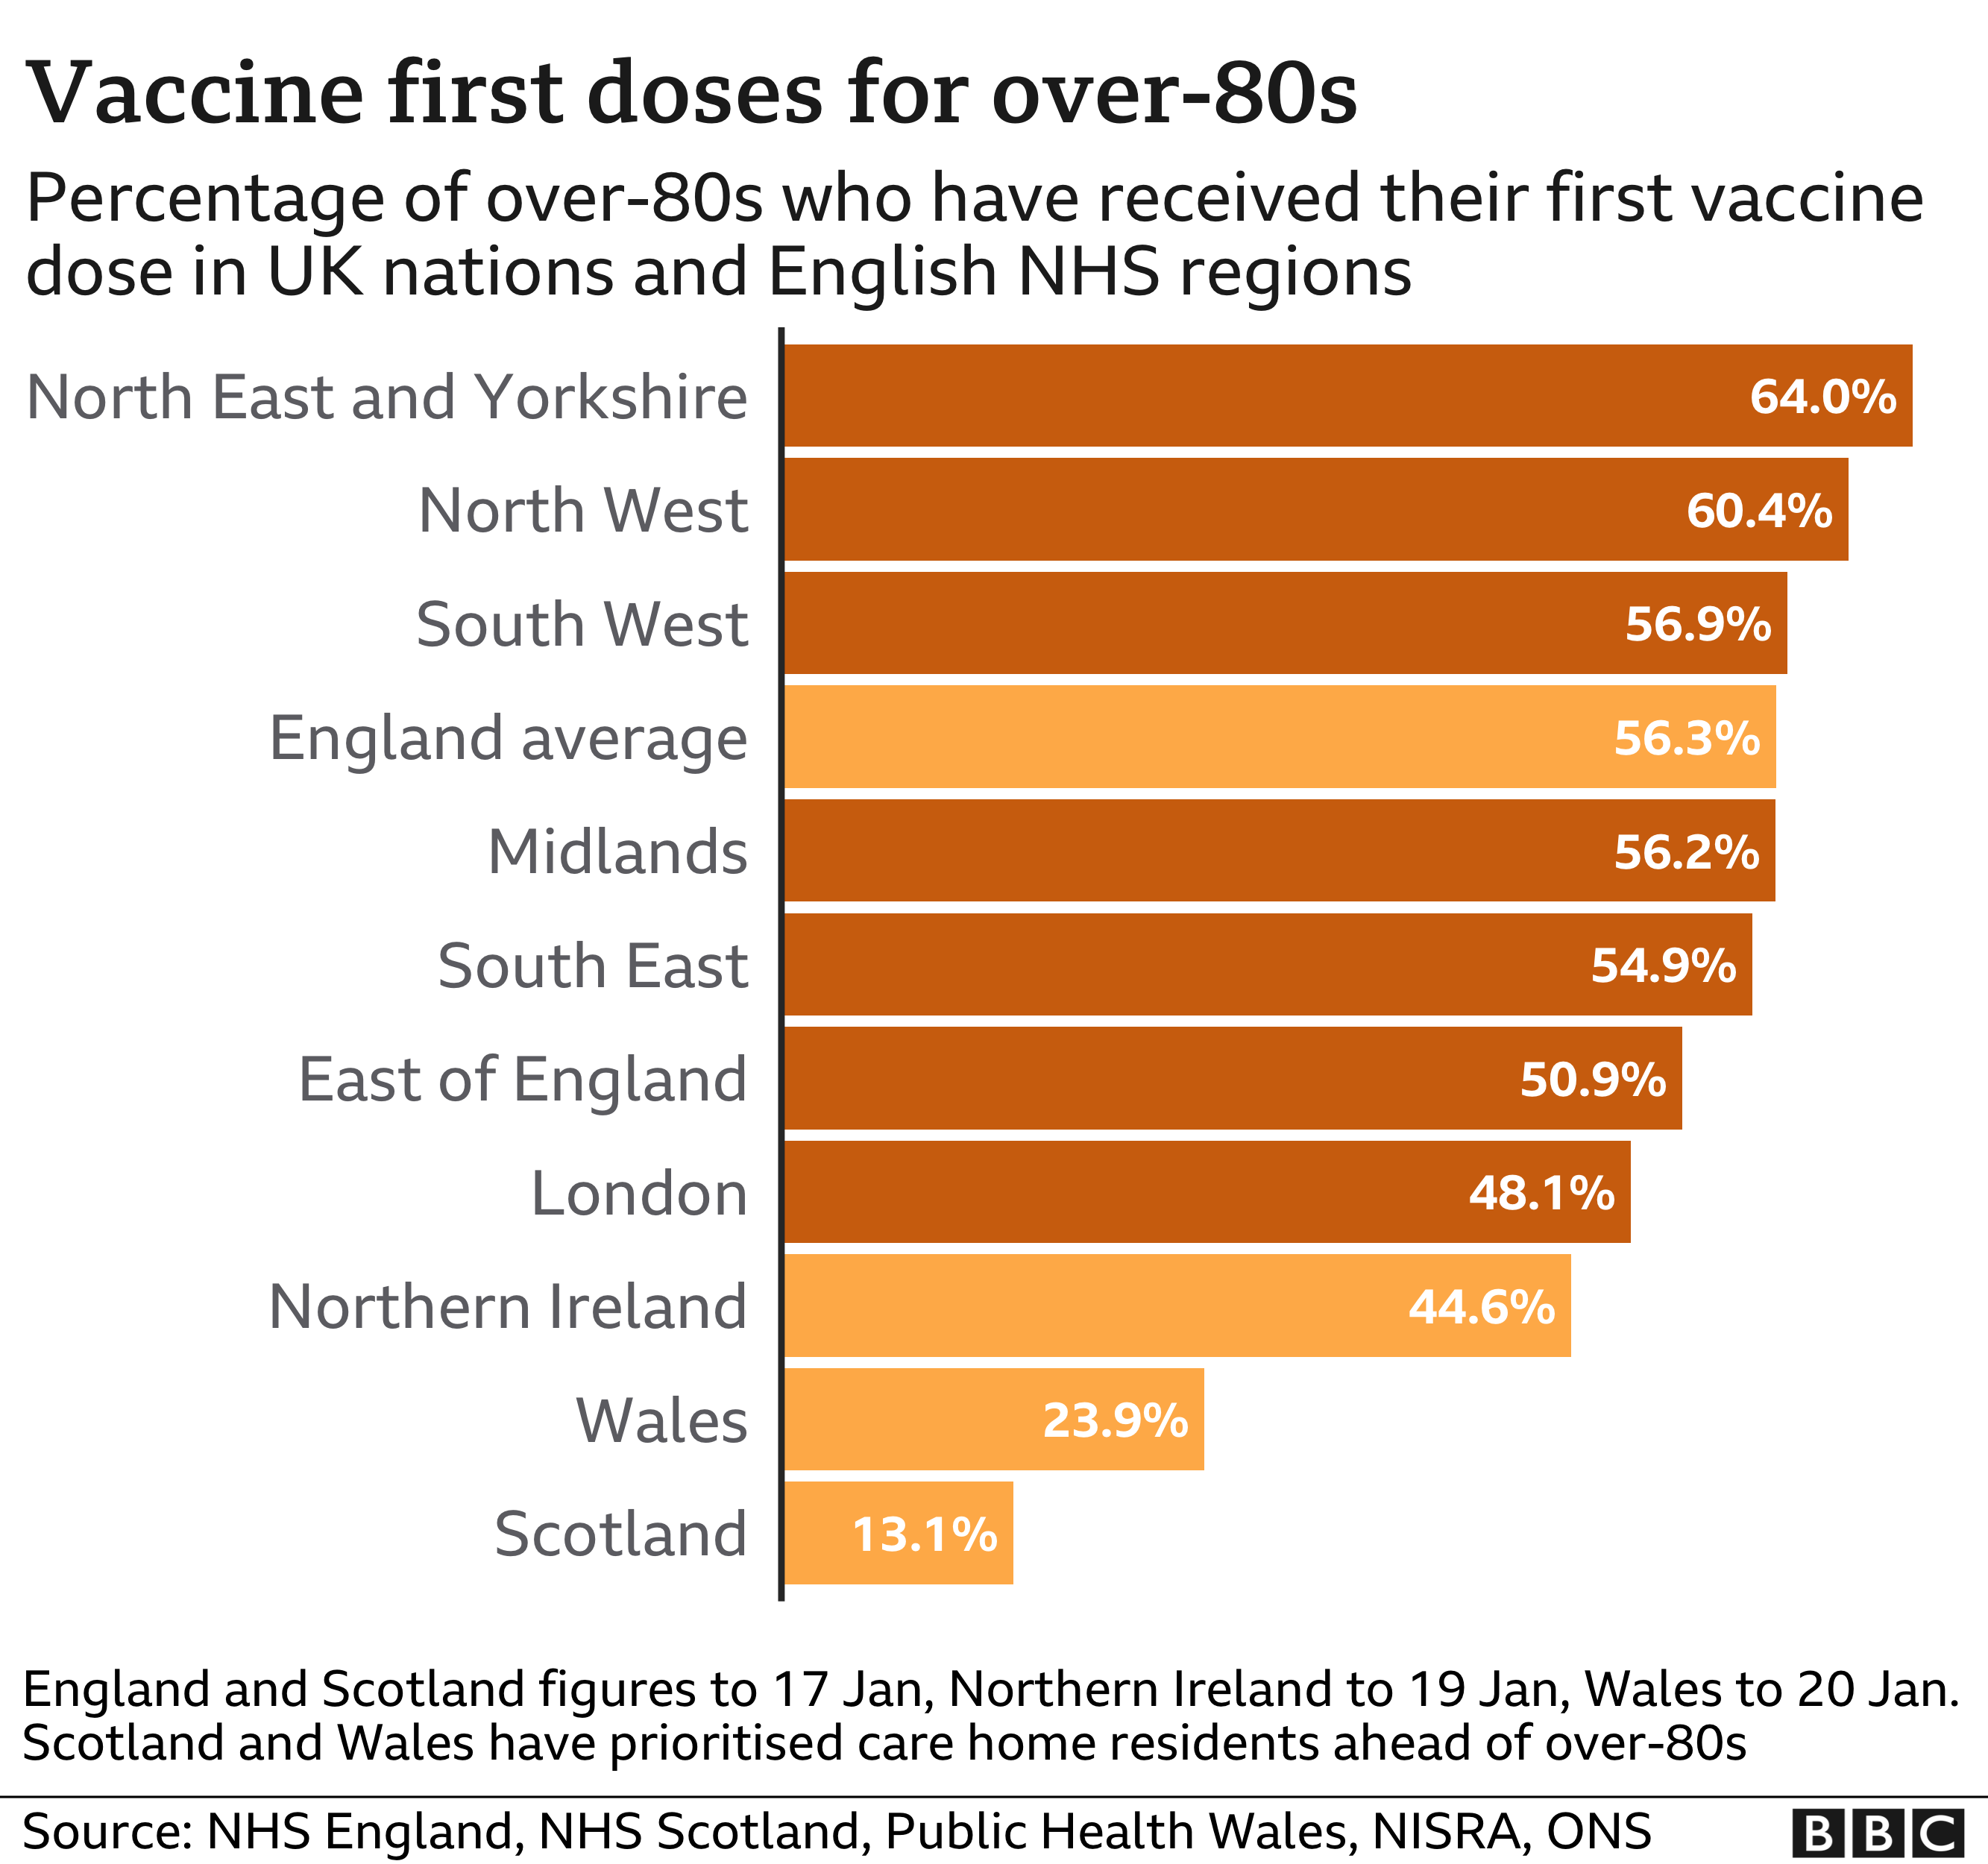 _116622952_vaccine_doses_eng_over8021jan-nc[1].png